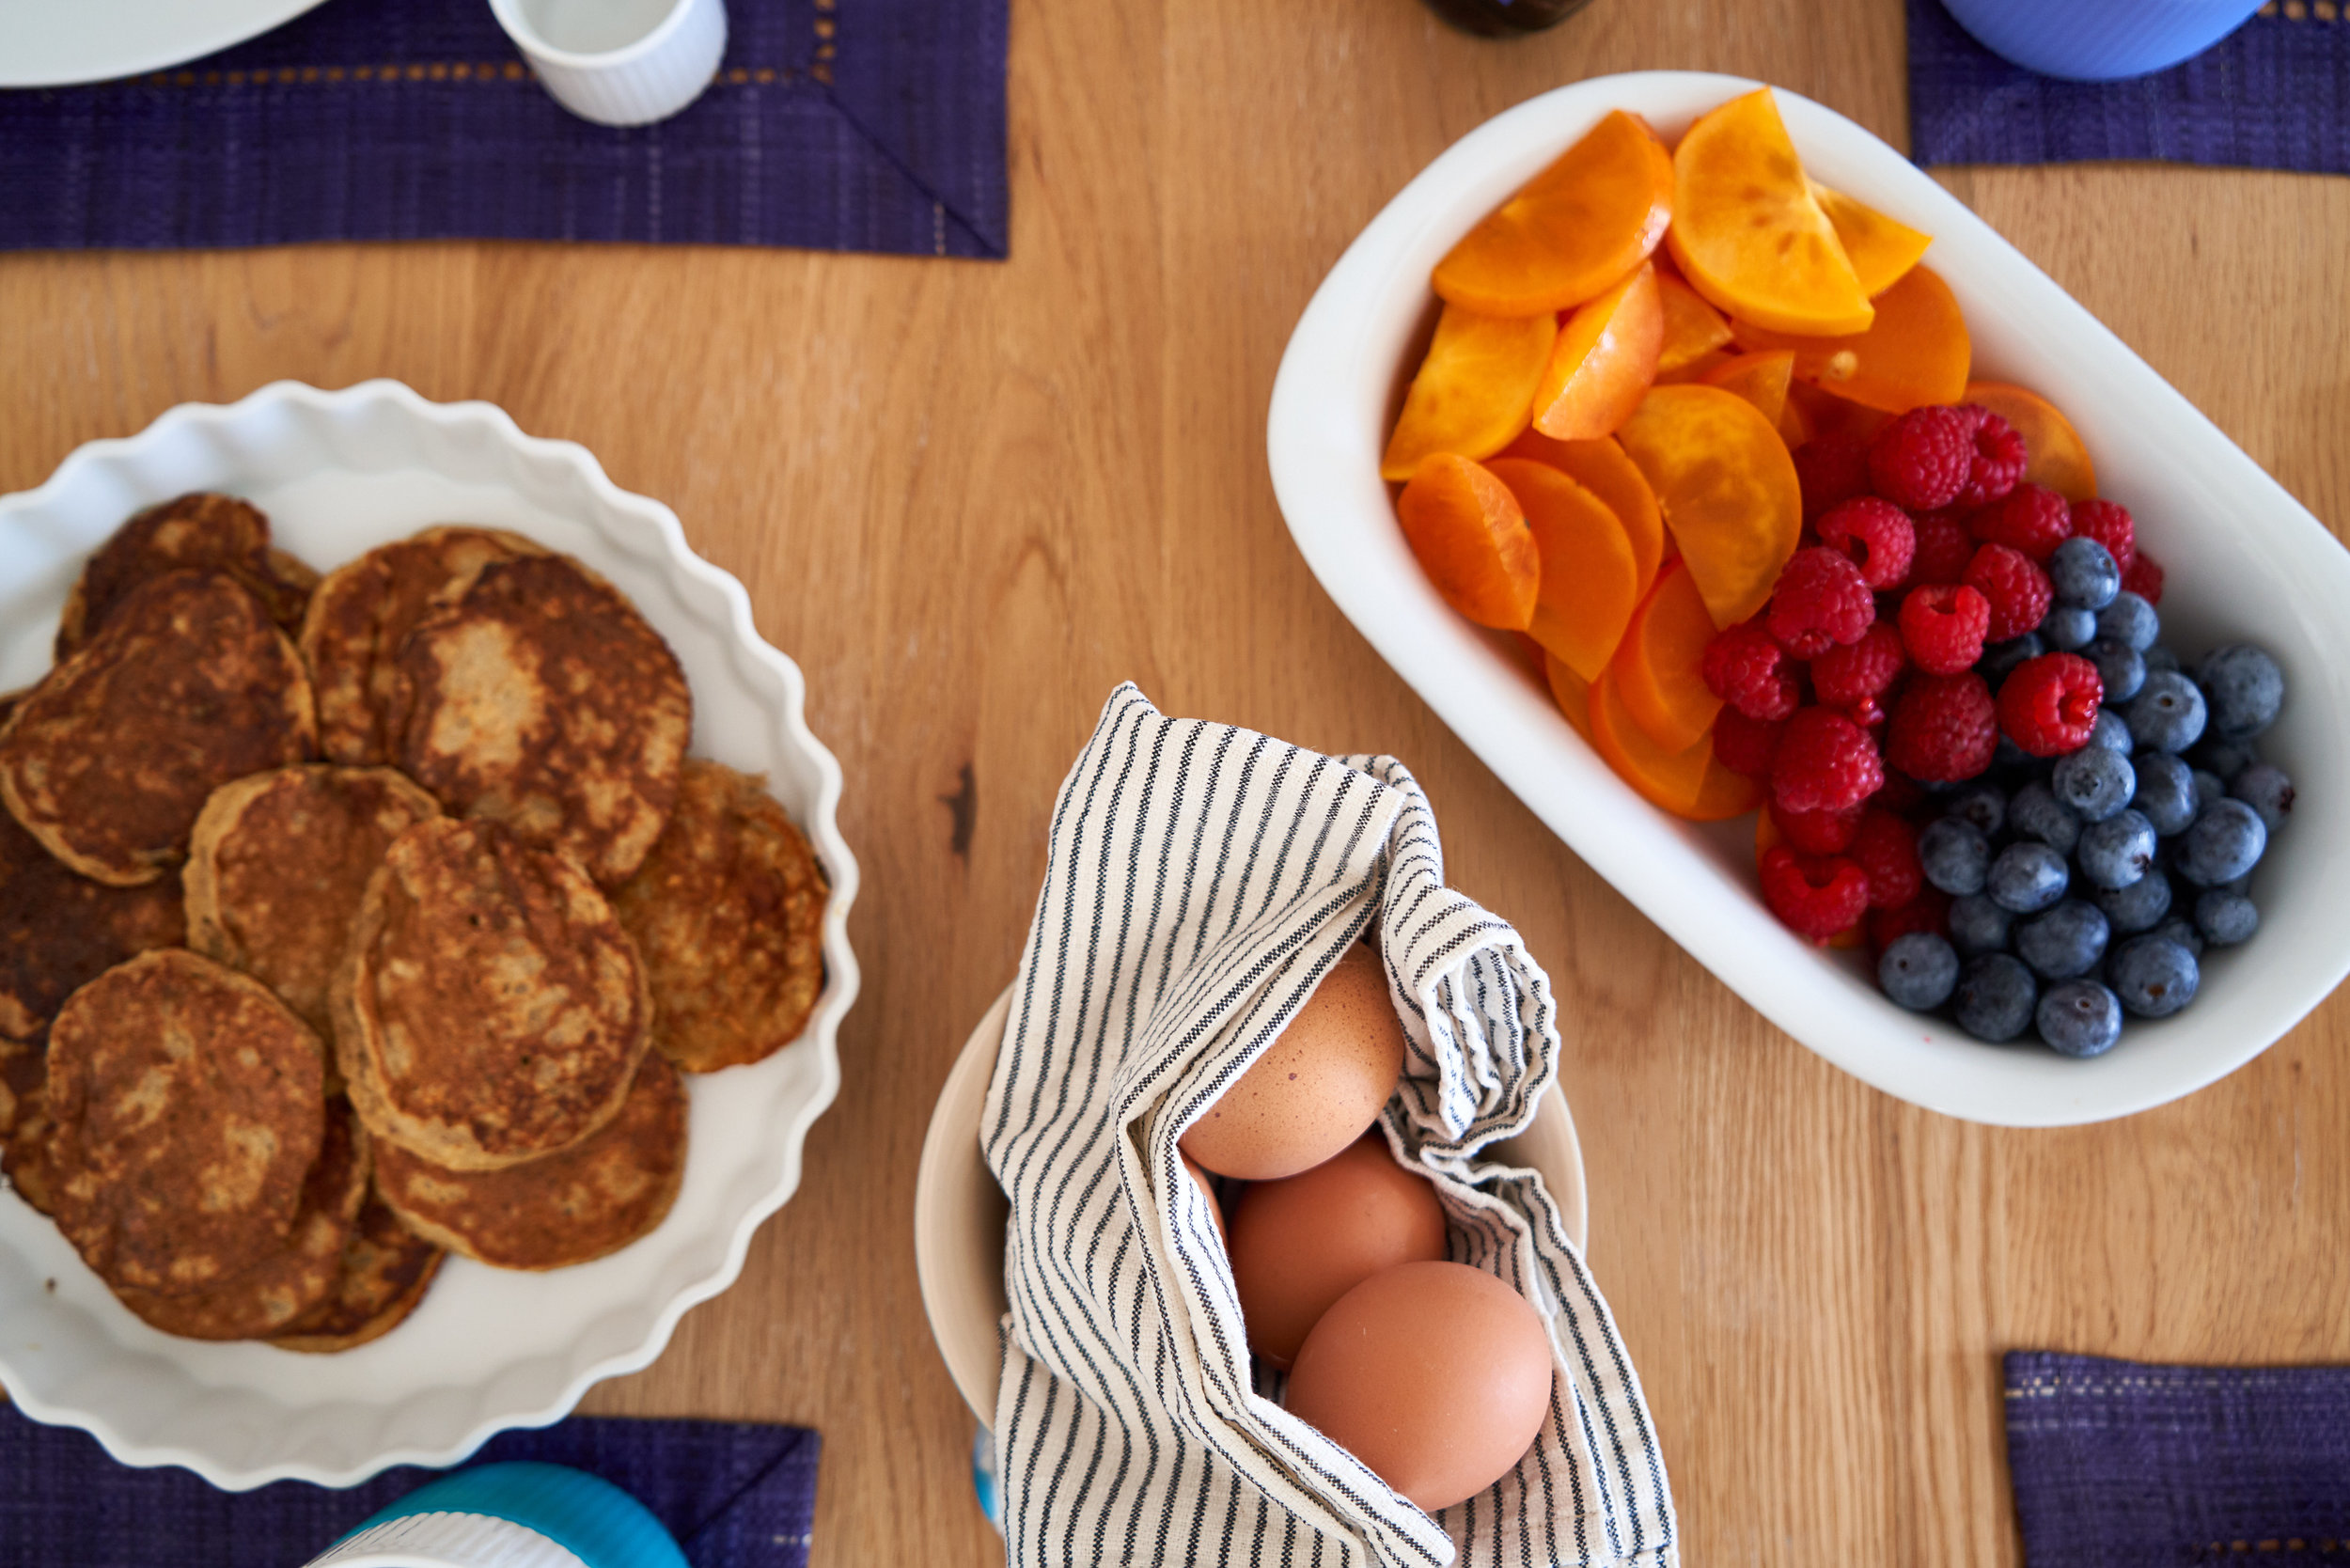 Making a Delicious Brunch for 4 - banana and oatmeal pancakes, soft-boiled eggs and blueberries, raspberries and kaki fruits | In Carina's Kitchen